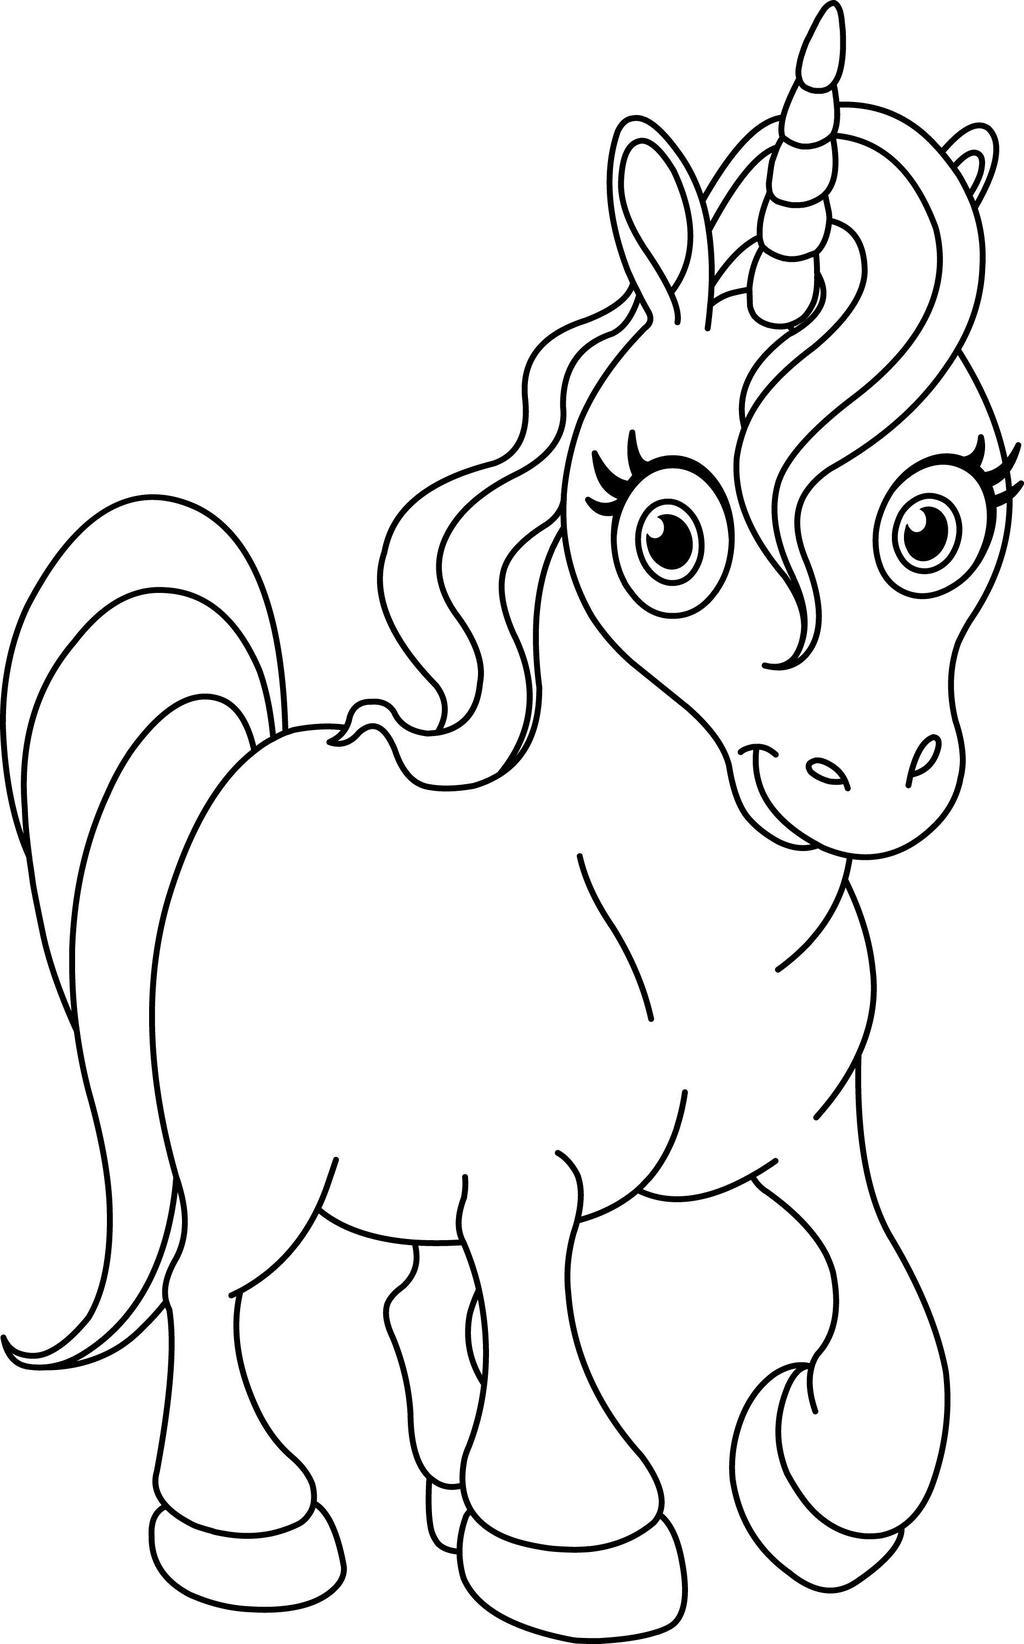 Free Unicorn Coloring Pages Pay tention Coloring Book printable